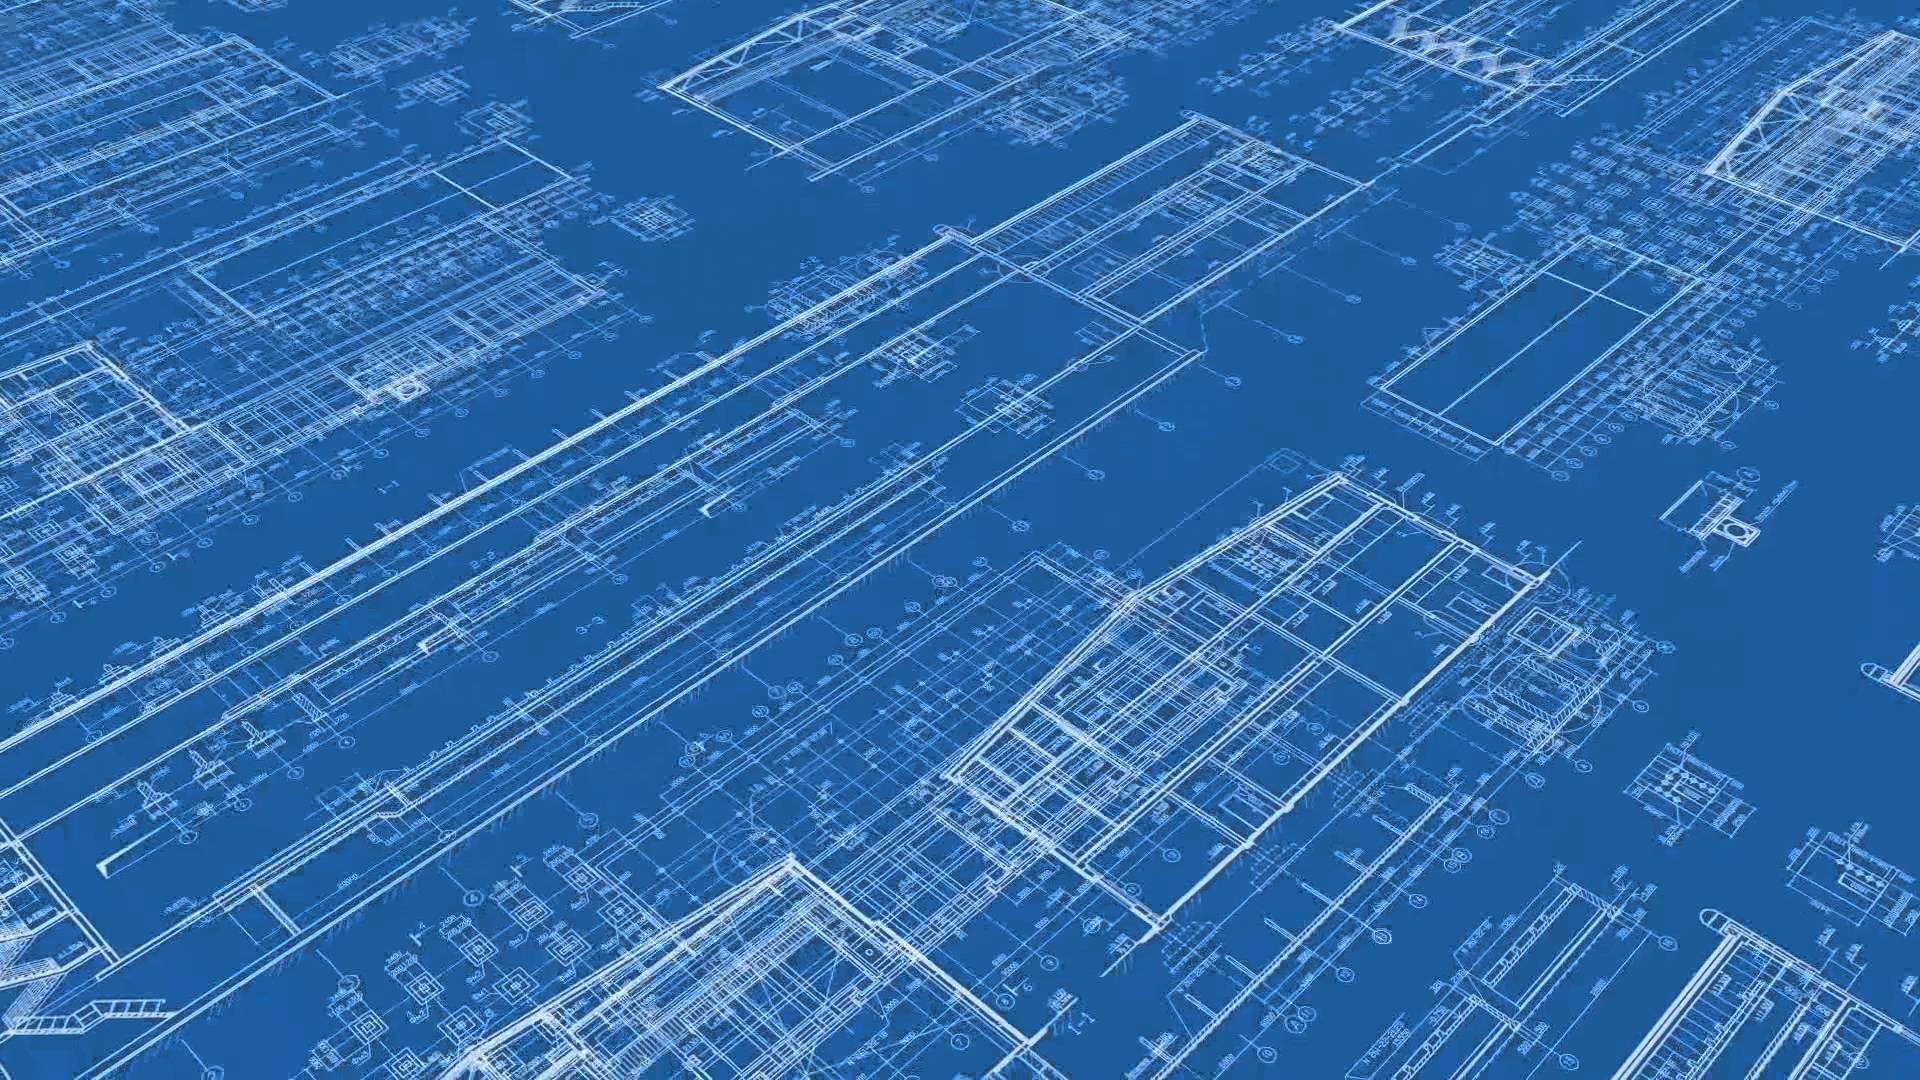 blueprint background download free cool hd backgrounds On blueprint builder free